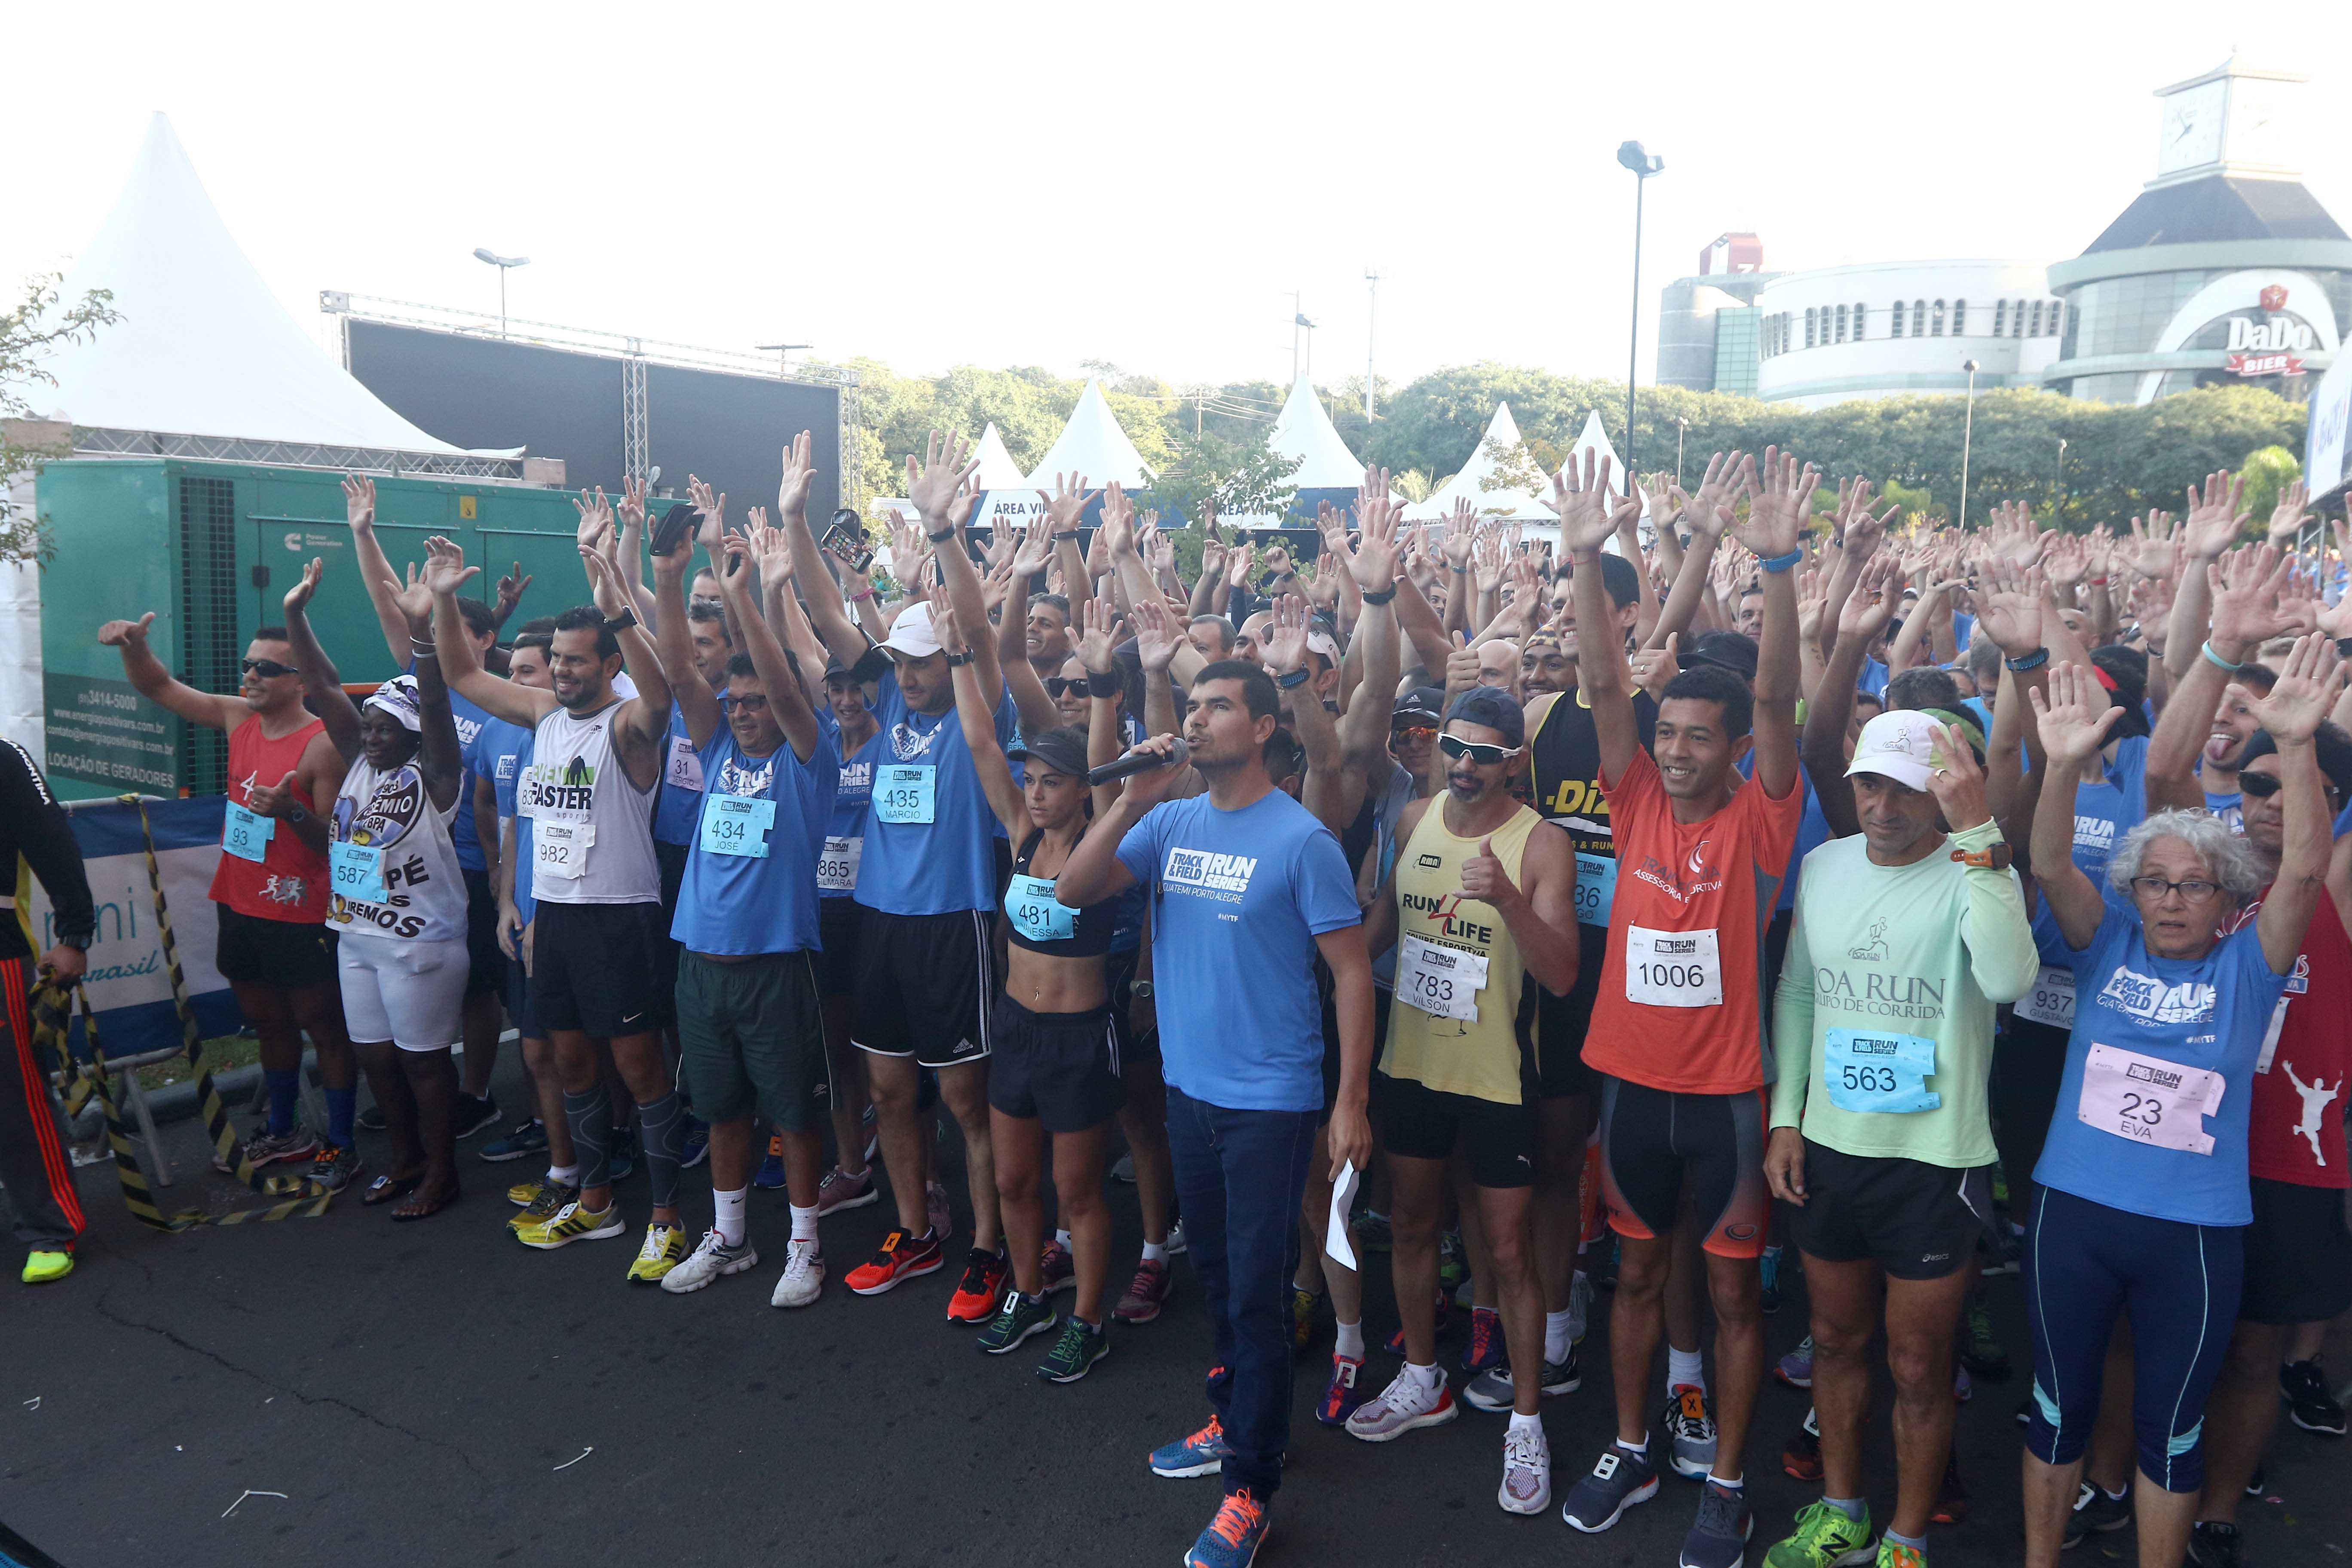 Track & Field Run Series Iguatemi